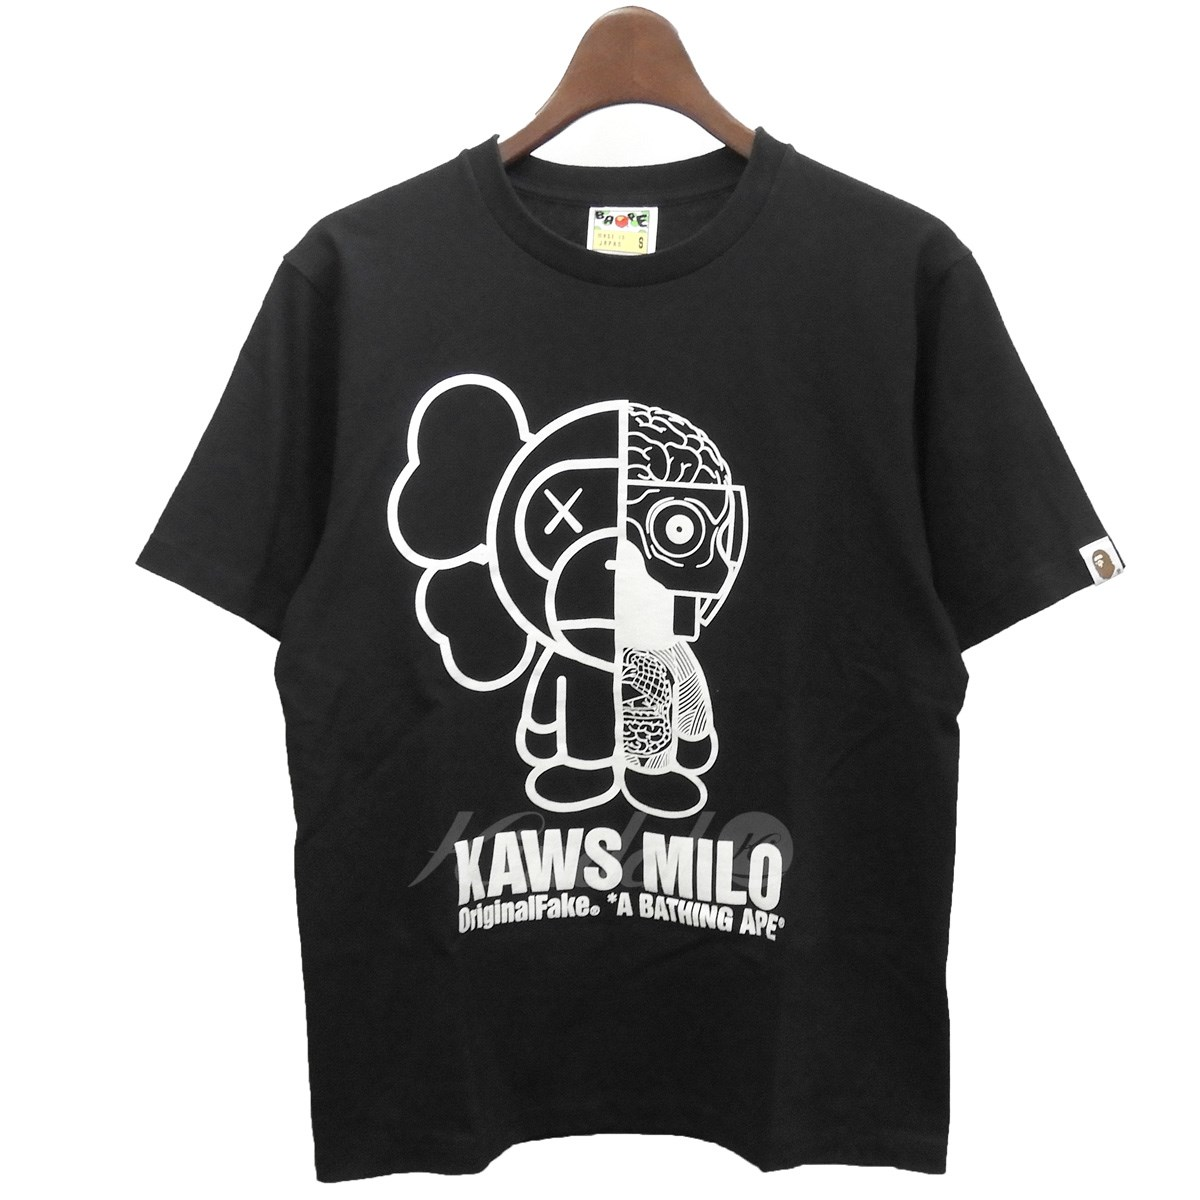 【中古】A BATHING APE×Original Fake KAWS MILO Tシャツ 【送料無料】 【167467】 【KIND1551】